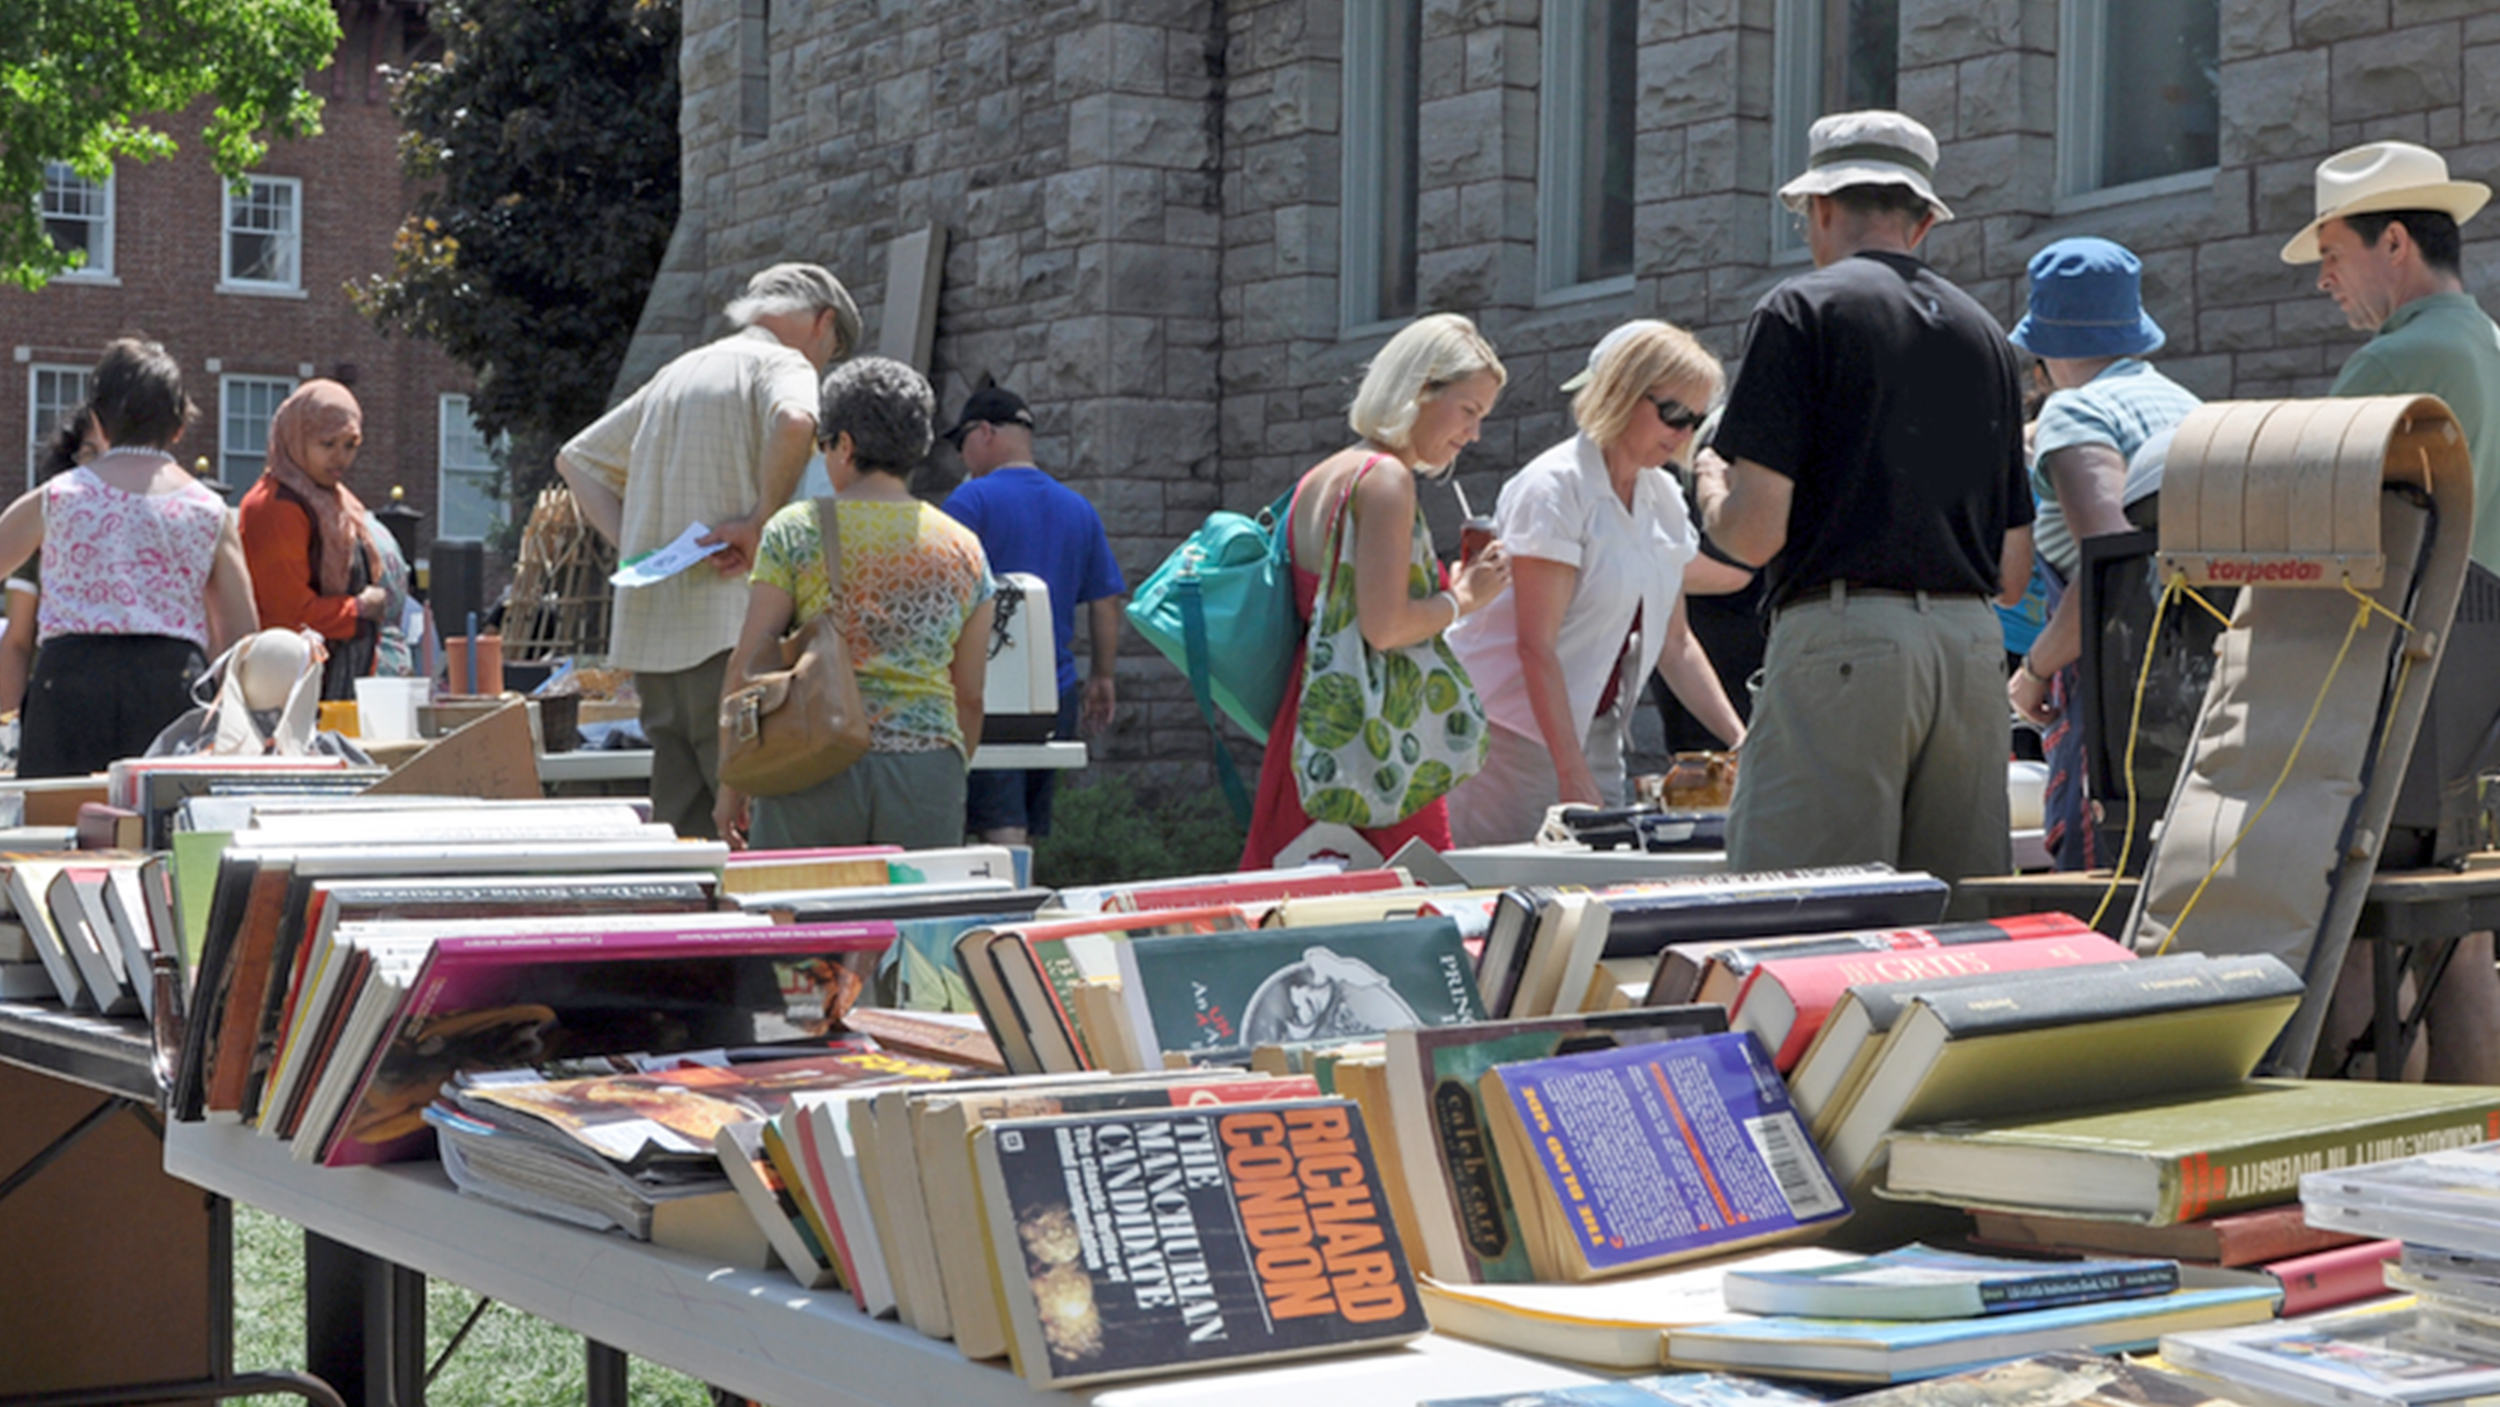 Garage Sale Book Prices How To Make More Money At A Garage Sale